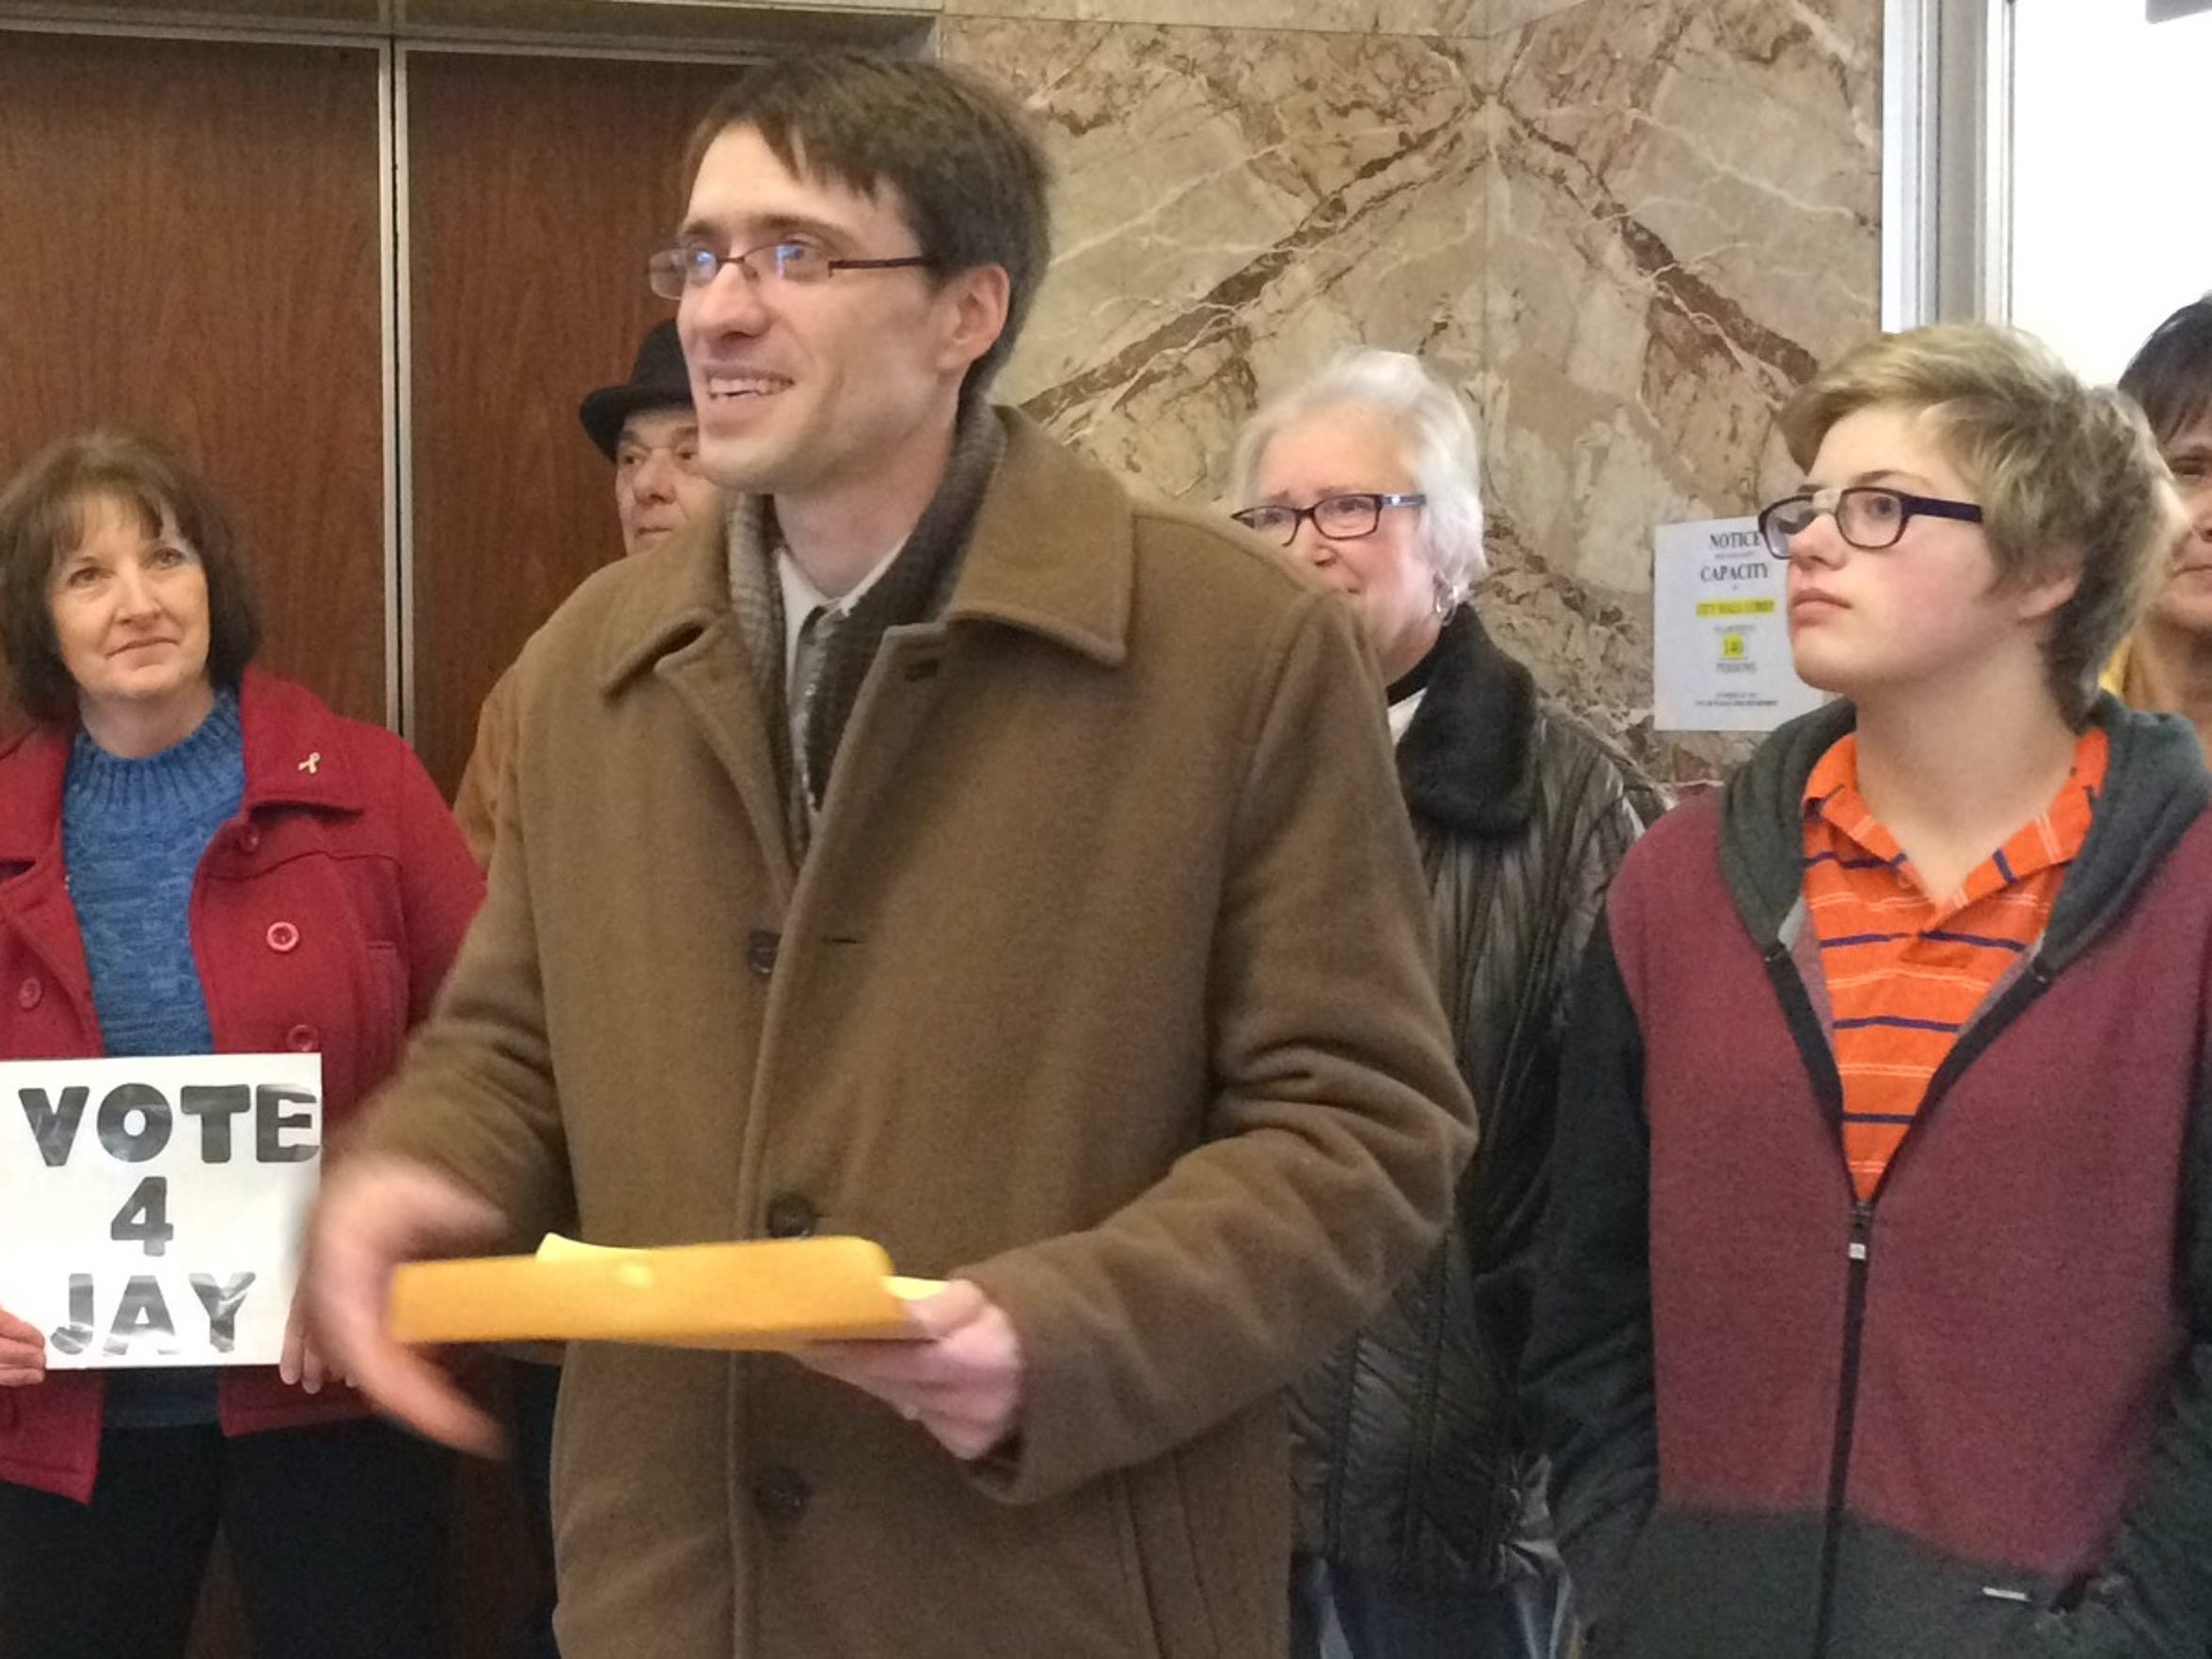 Jay Kronenwetter announces his bid to become mayor of Wausau in the City Hall lobby on Dec. 30, 2015.